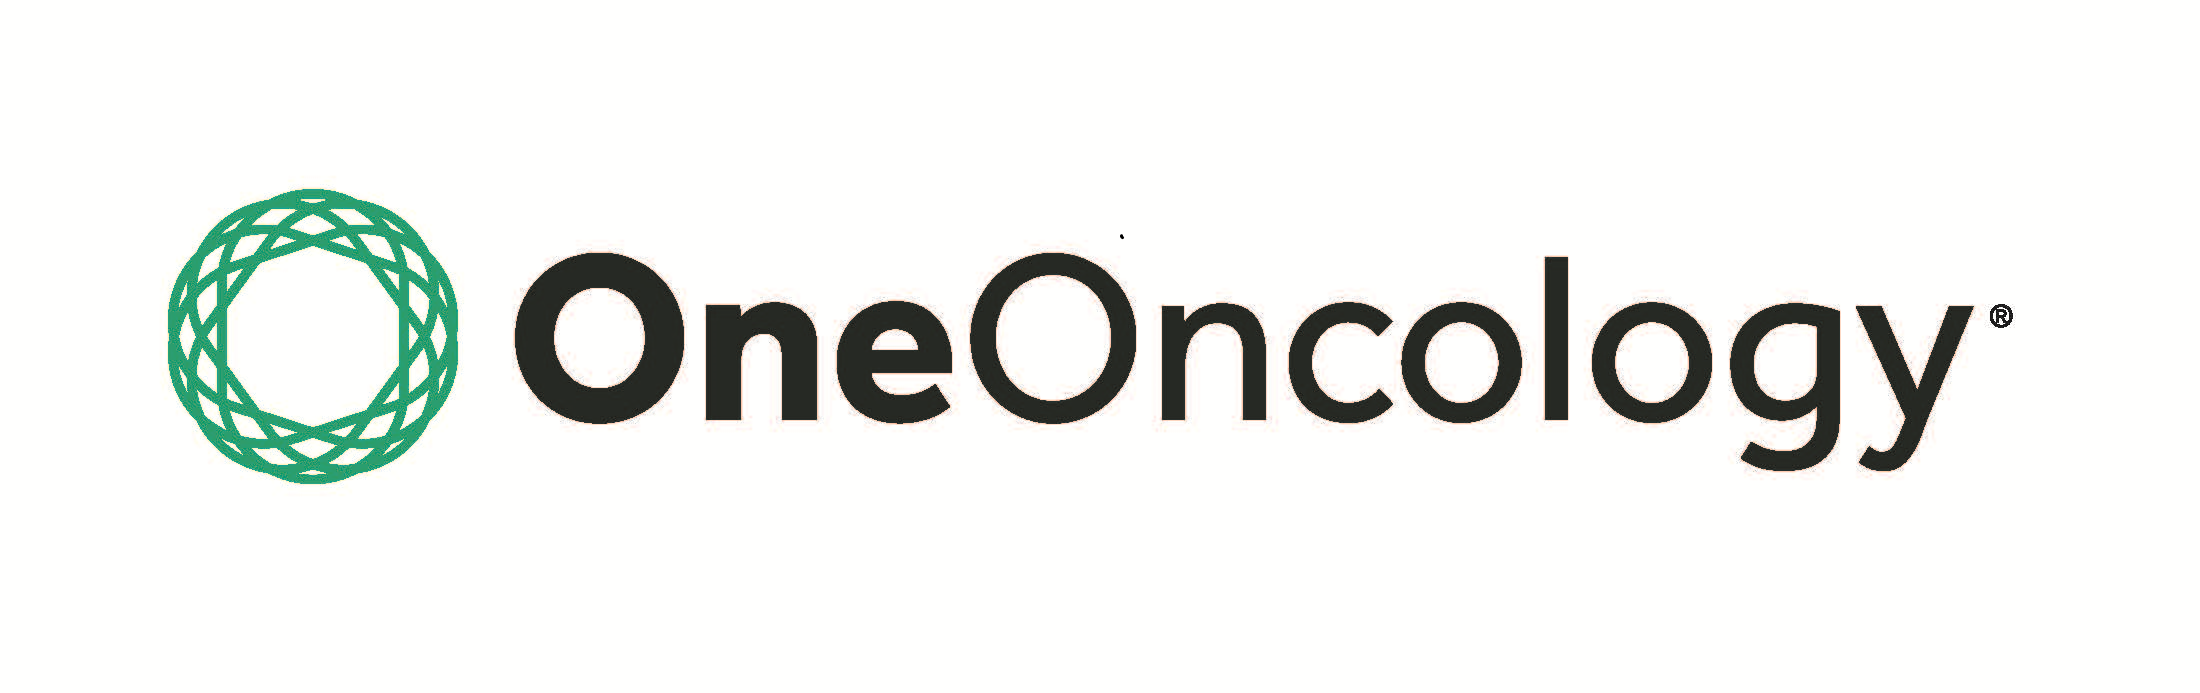 One Oncology